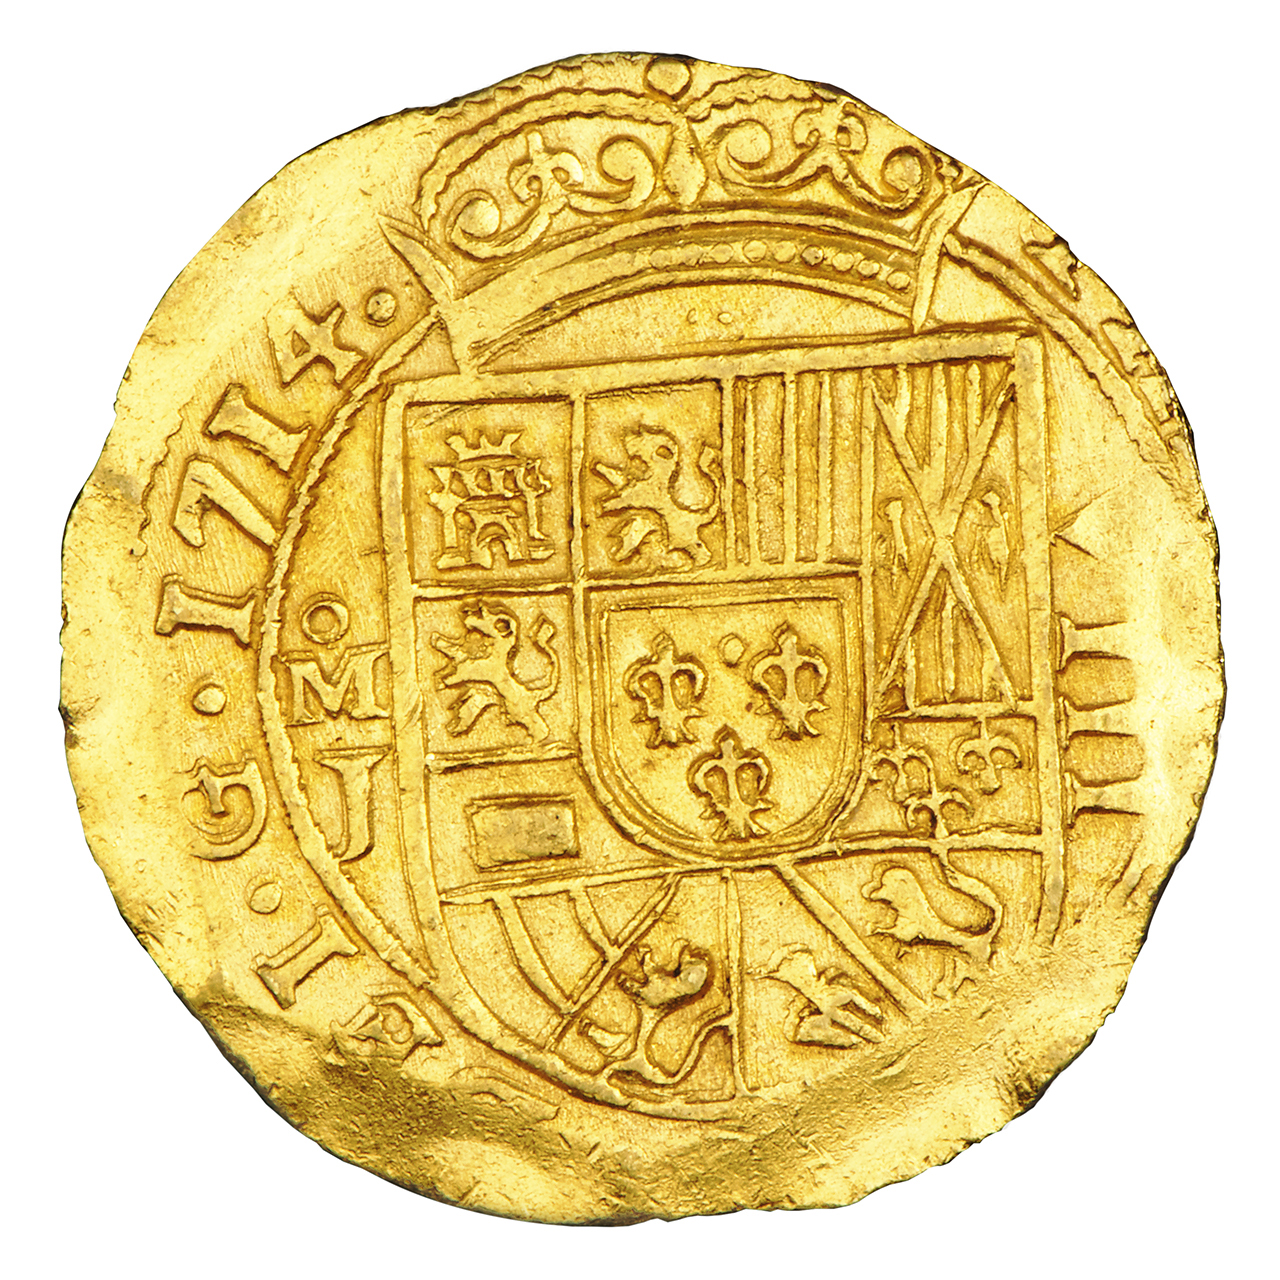 gold coin with a Spanish shield embossed on it